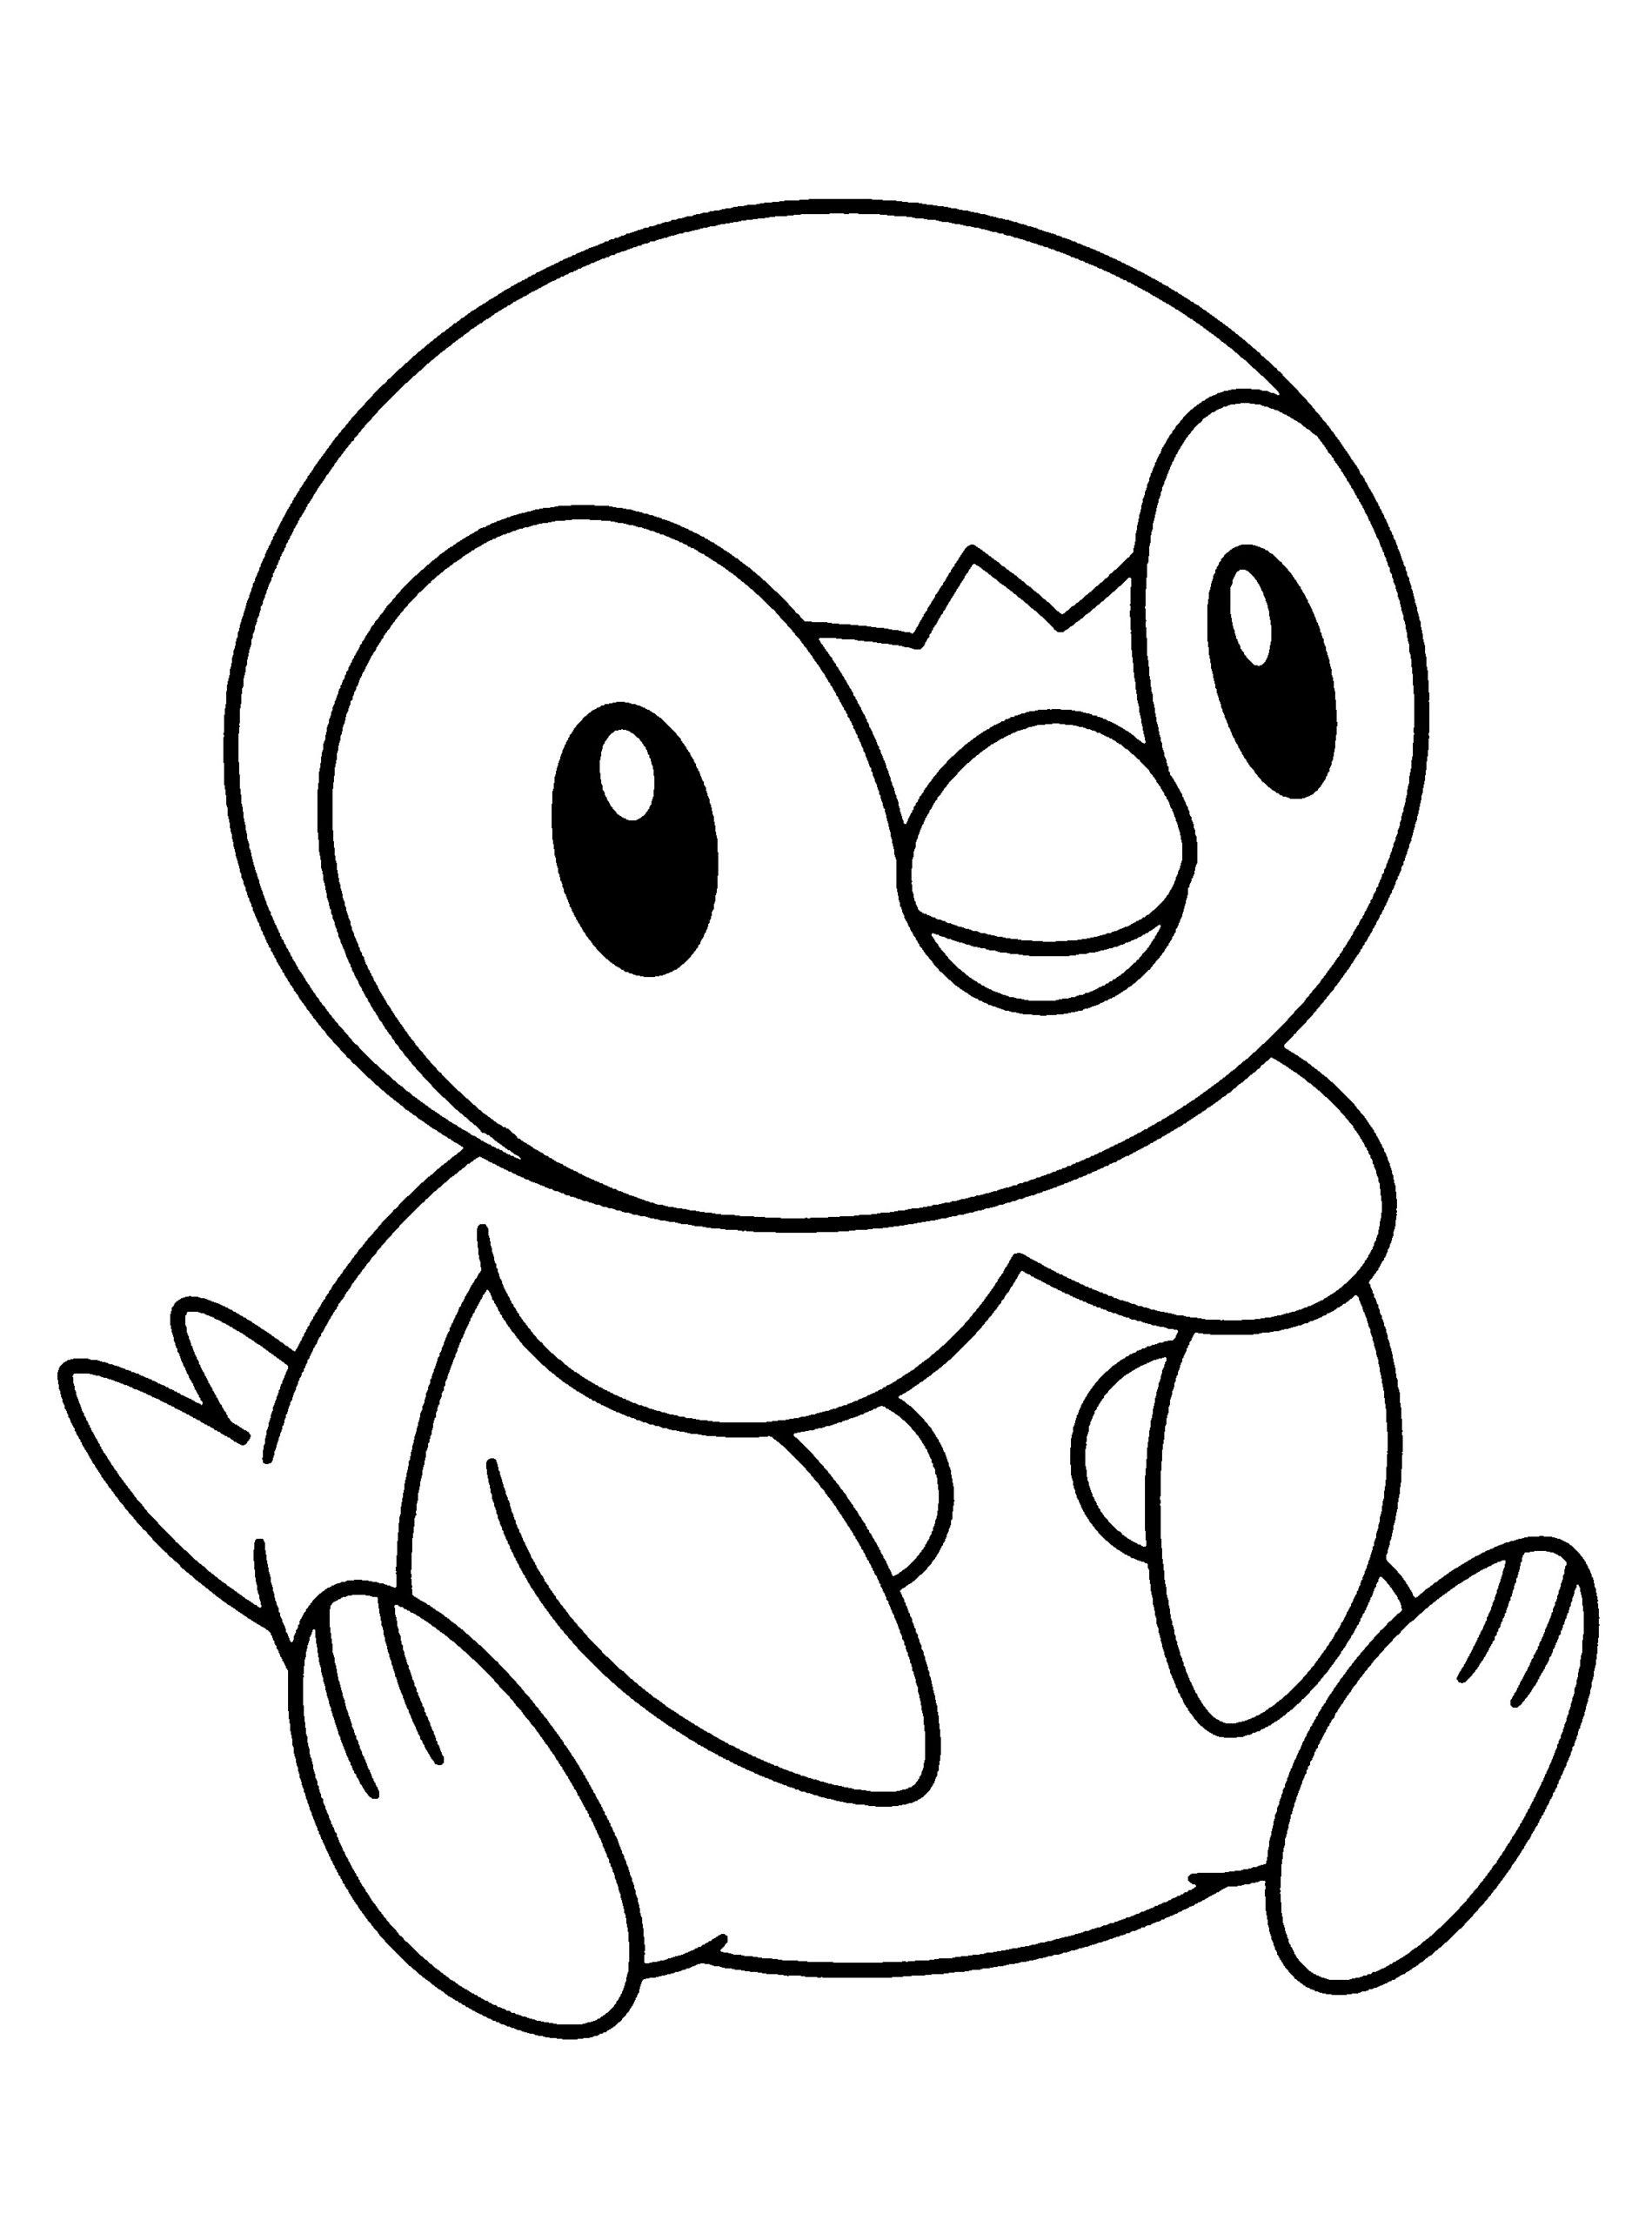 Piplup Pokemon Coloring Page Youngandtae Com Pokemon Coloring Pages Pokemon Coloring Coloring Pages